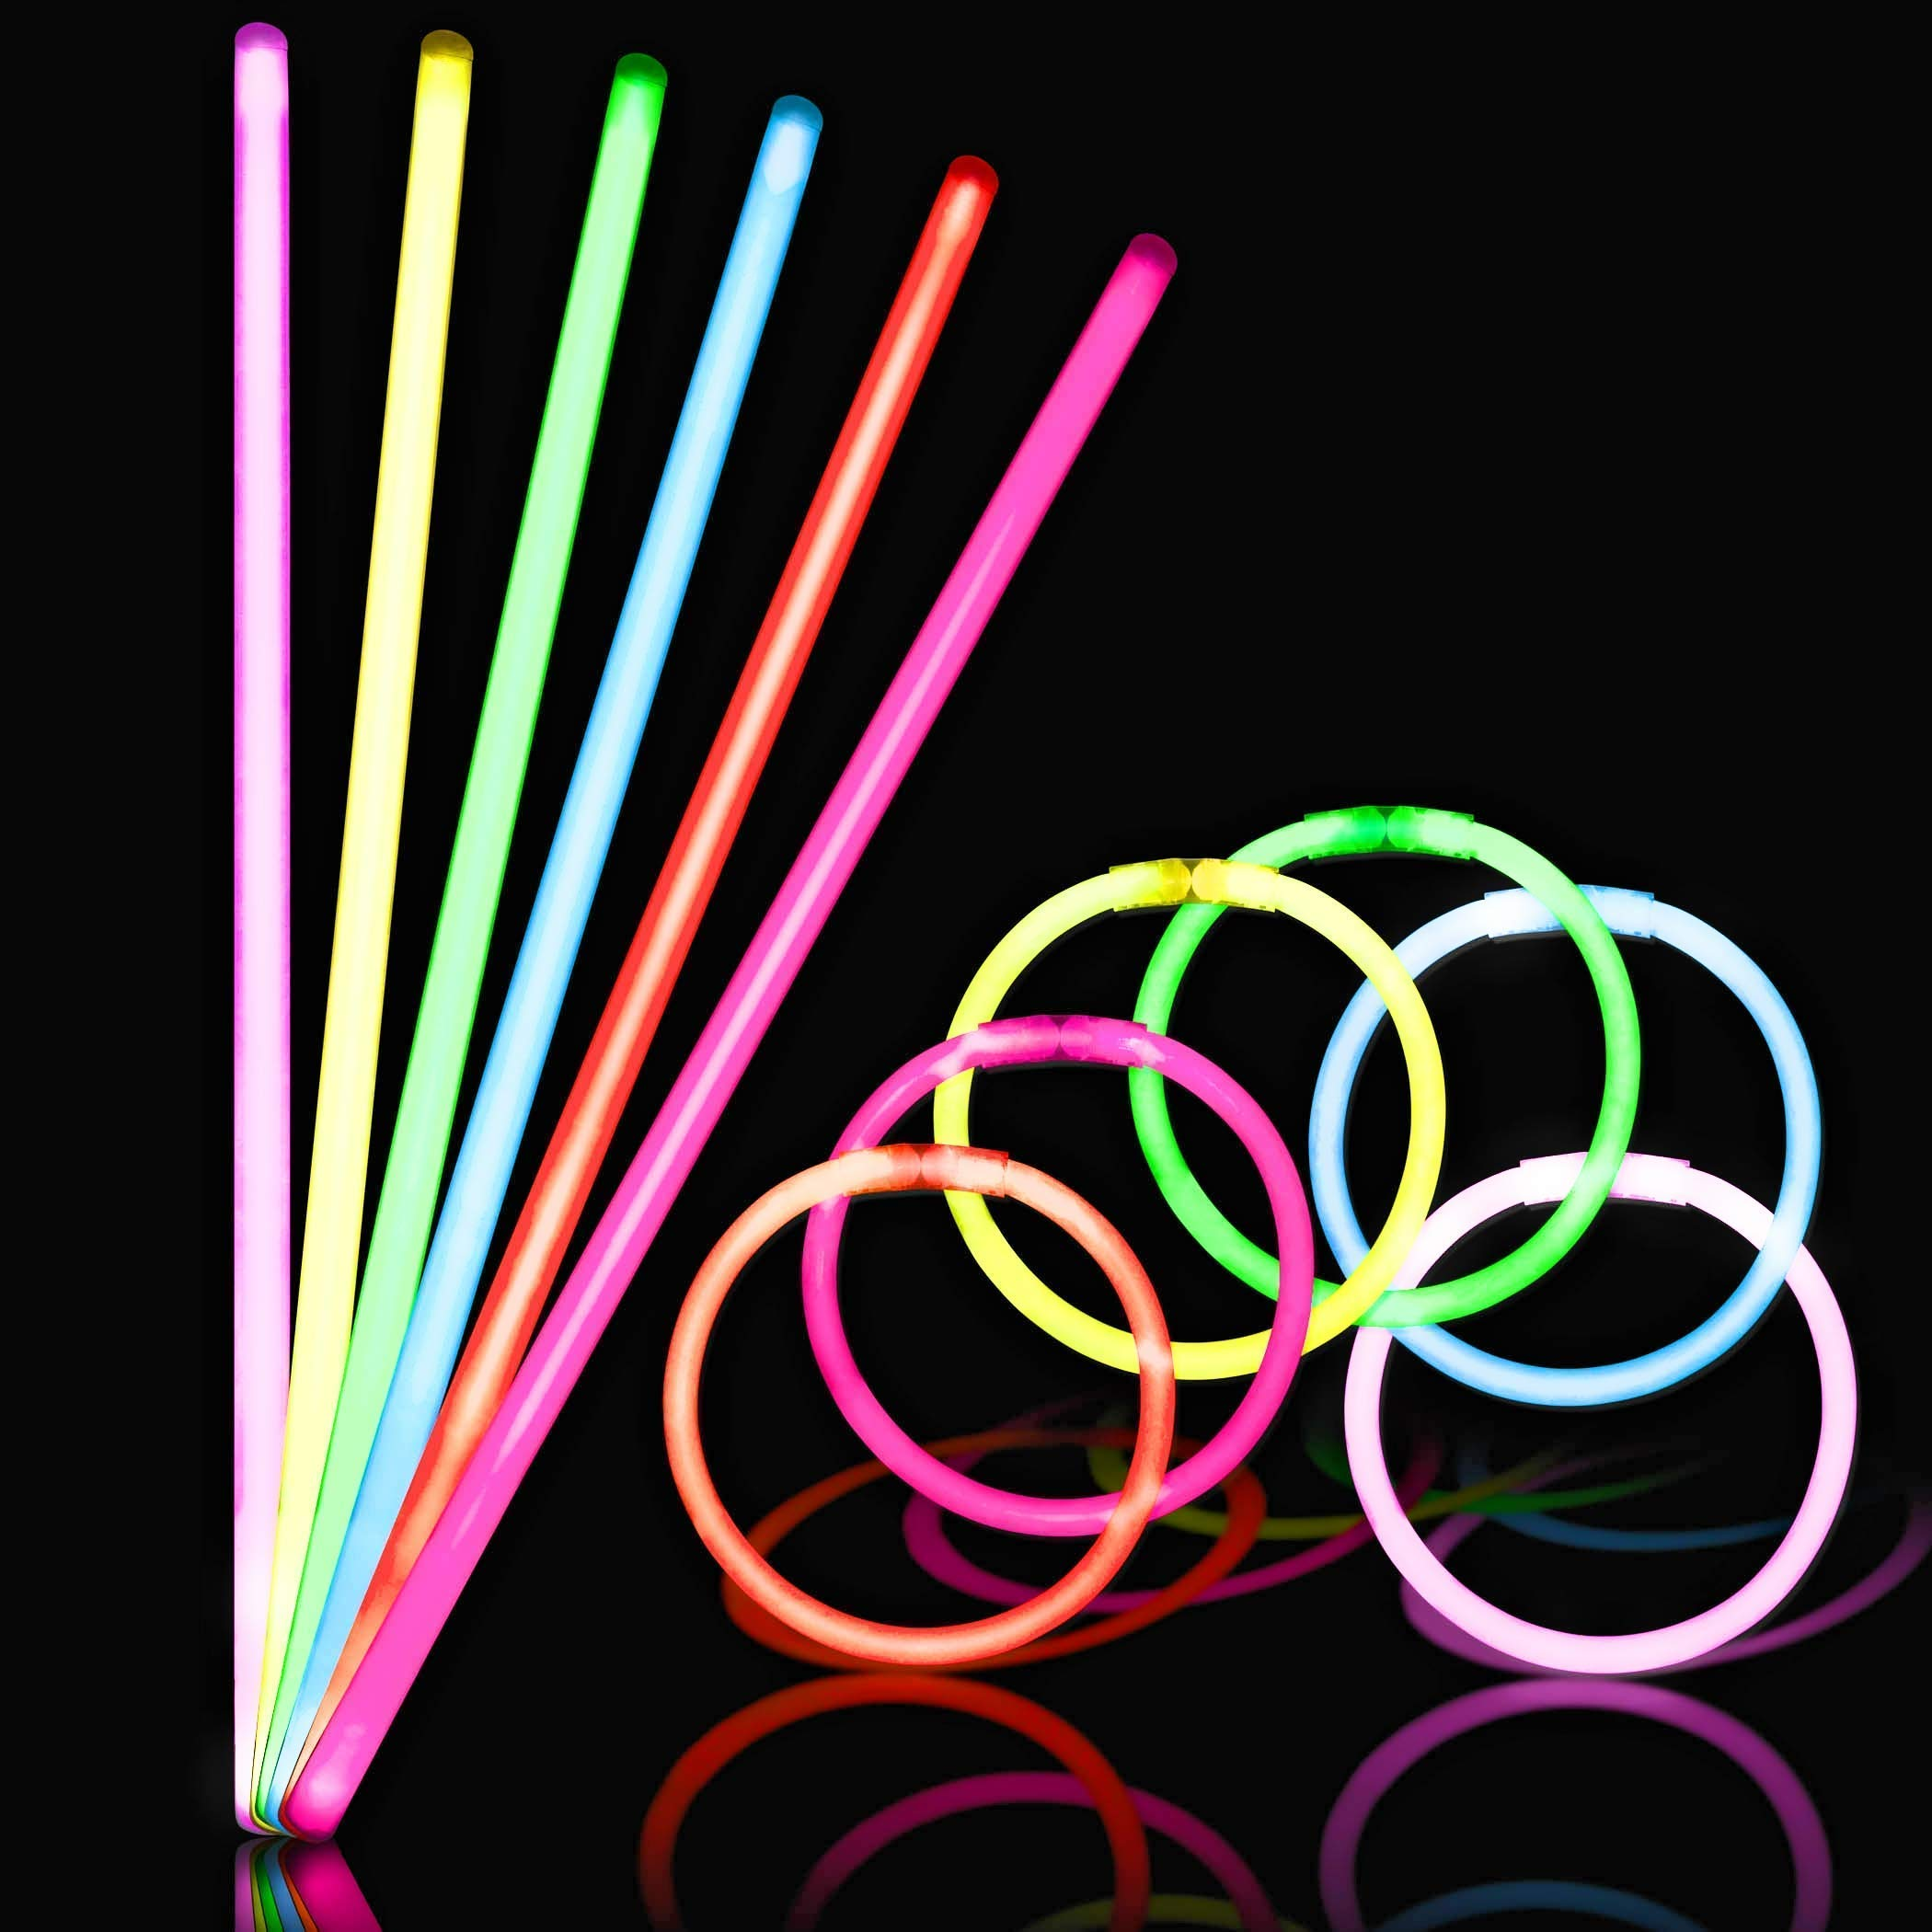 150 Ultra Bright Glow Sticks - Total 300 Pcs - 8'' Necklaces And Bracelets Glow Stick With Connectors - Bulk Party Pack Ultra Bright Glowsticks - 10 Hour Duration - Mixed Colors In 3 Tubes by Glowing U.S. inc (Image #1)